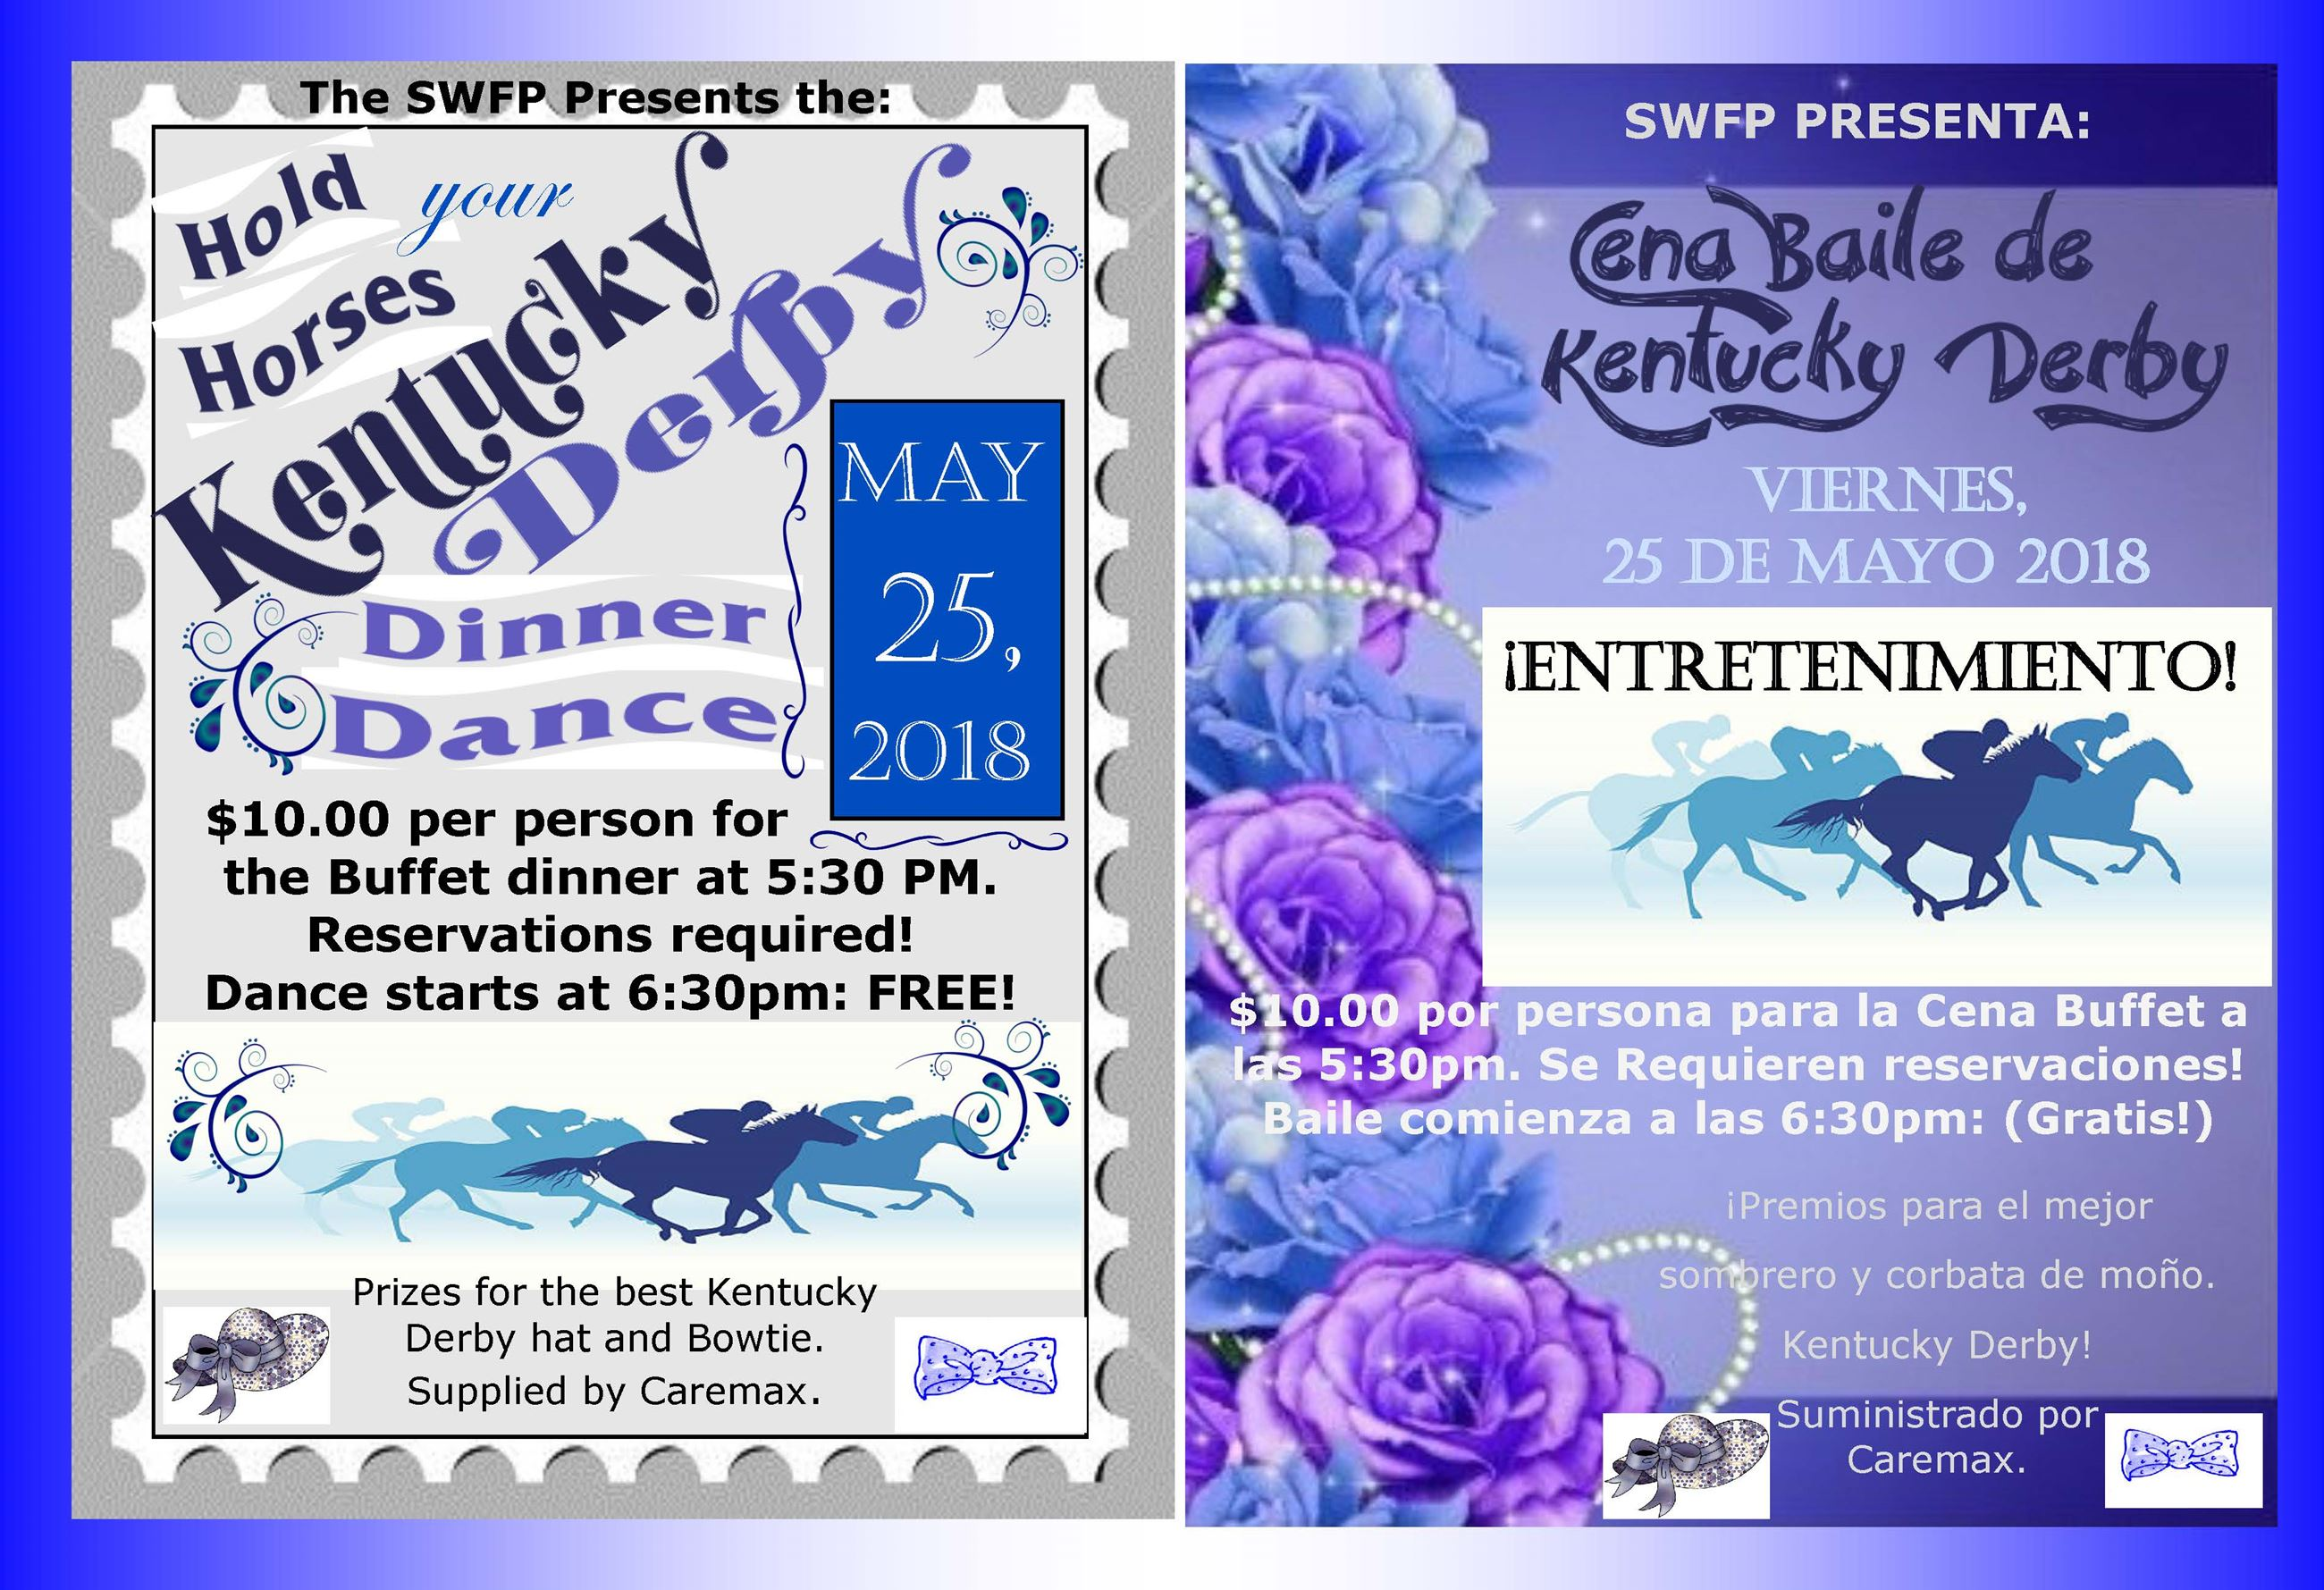 kentucky derby dinner dance 5-25-18